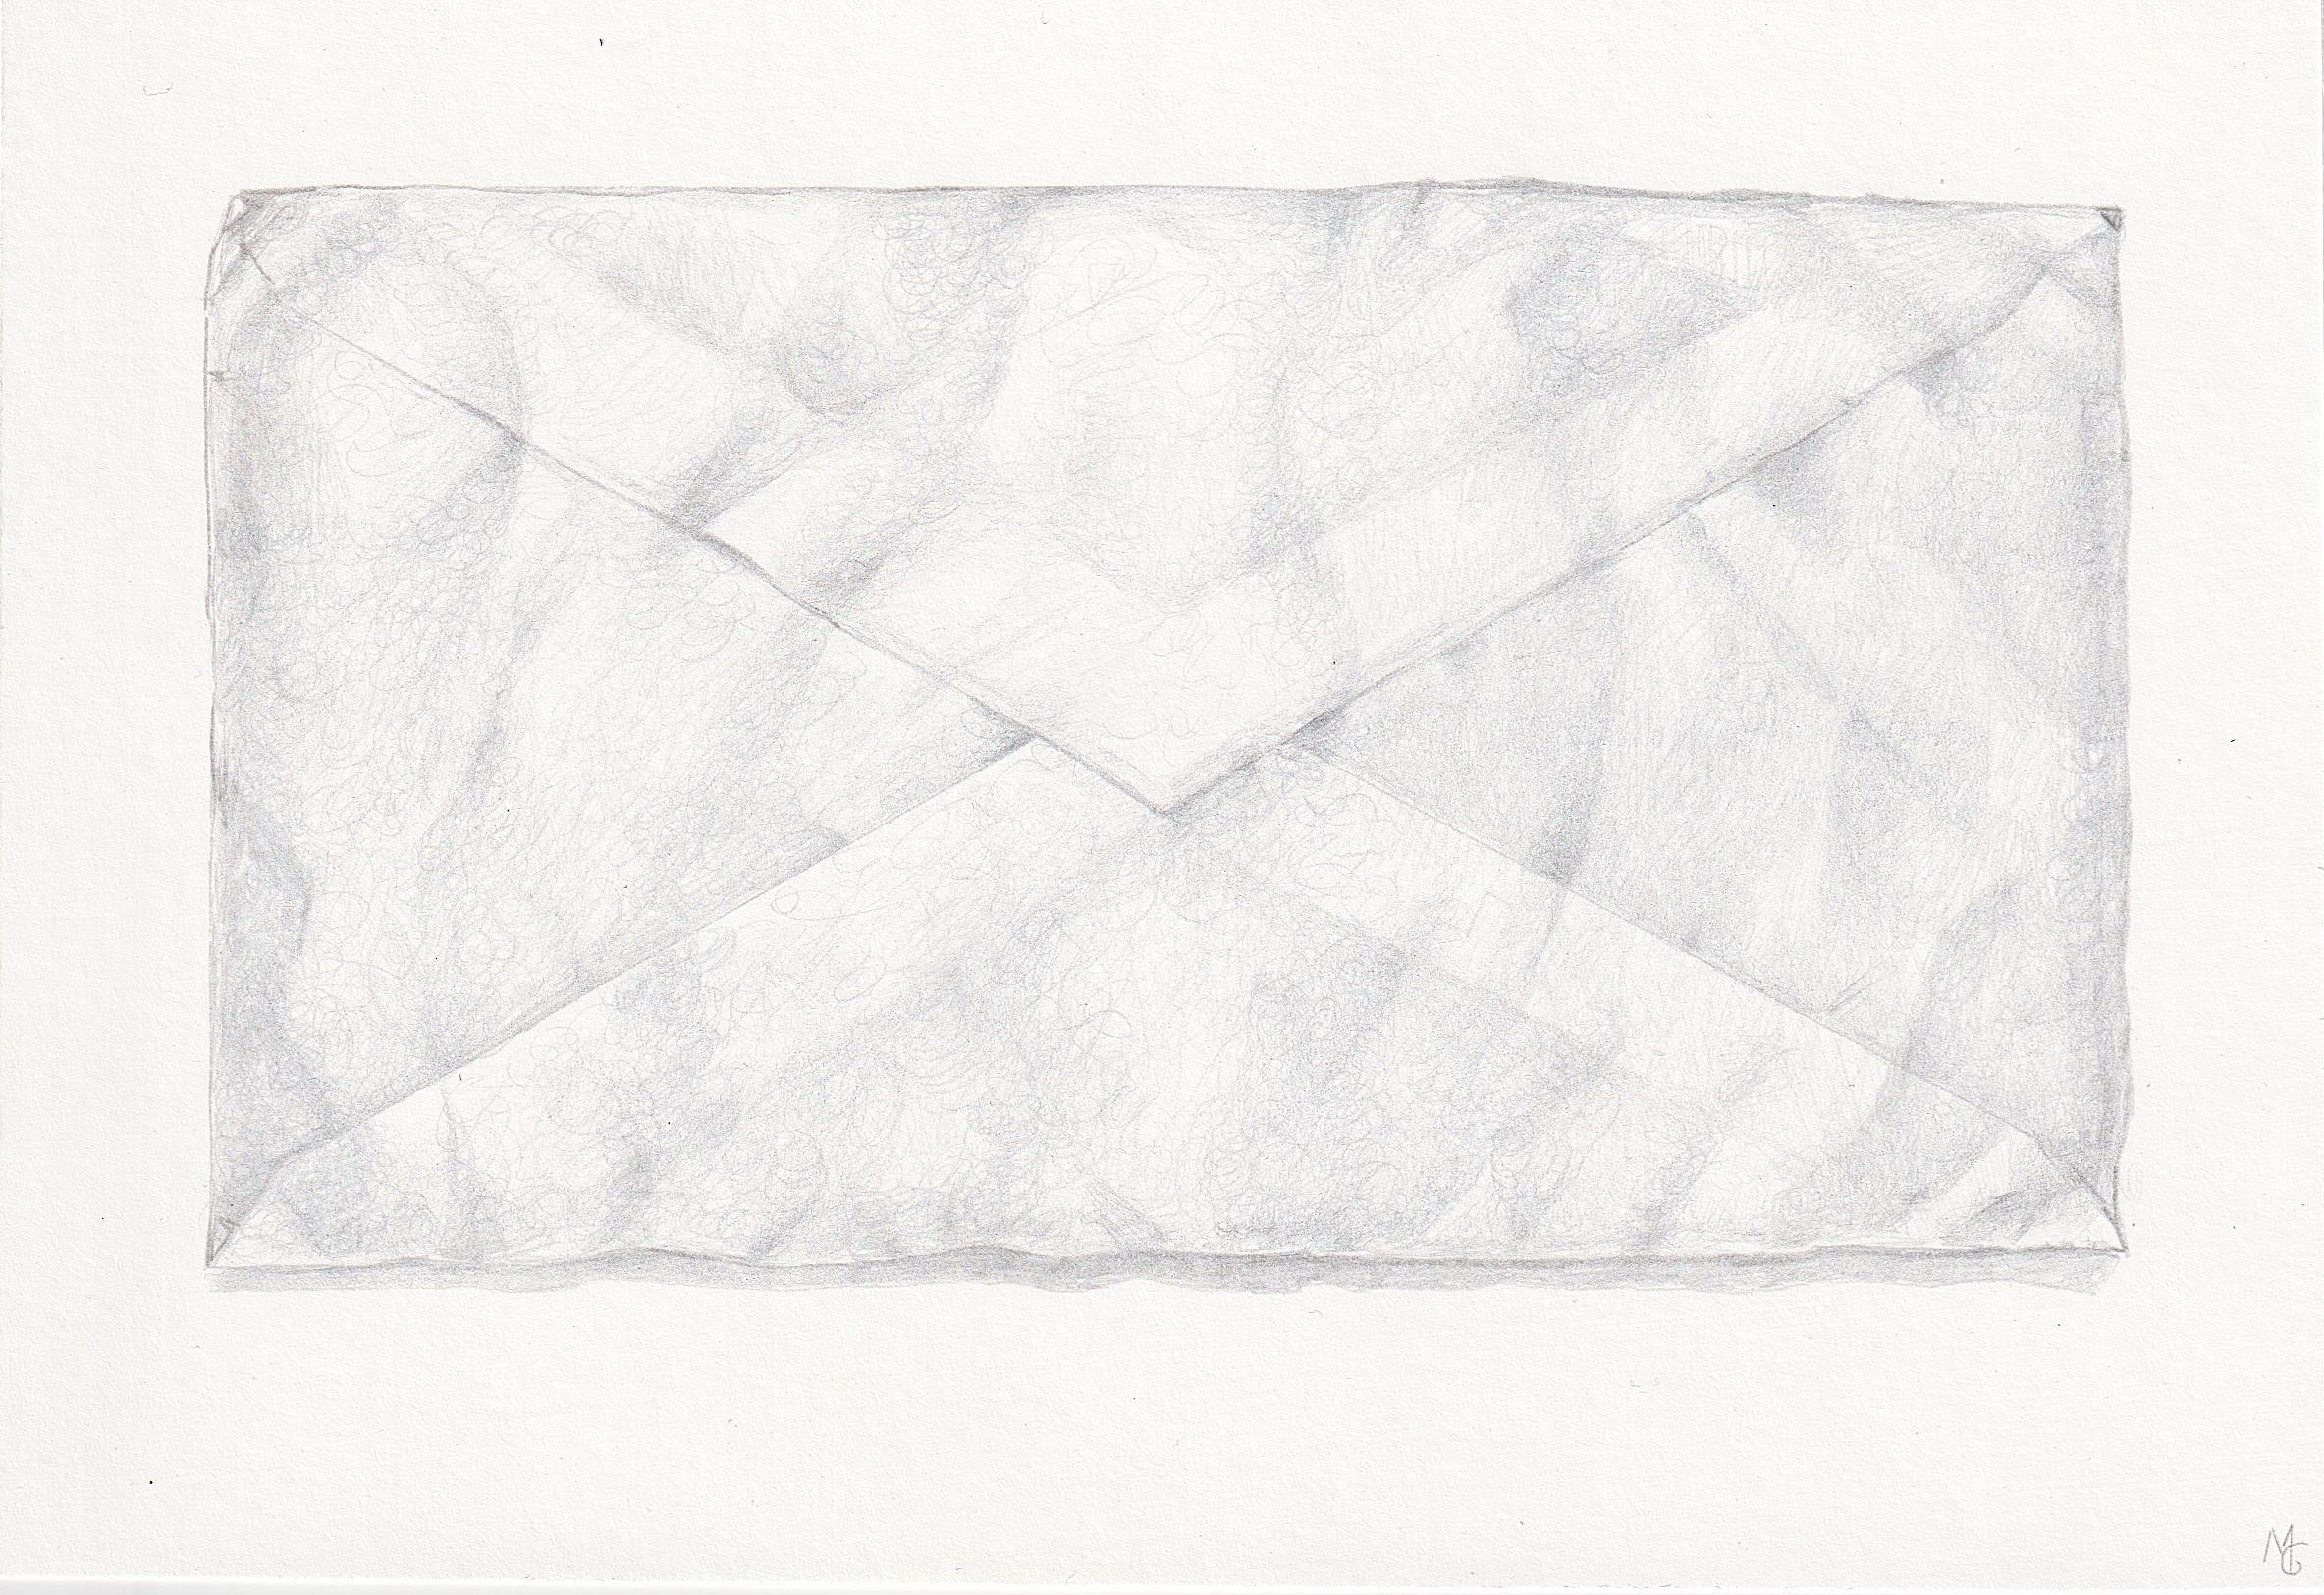 Crushed Envelope, contemporary realist silverpoint still life drawing